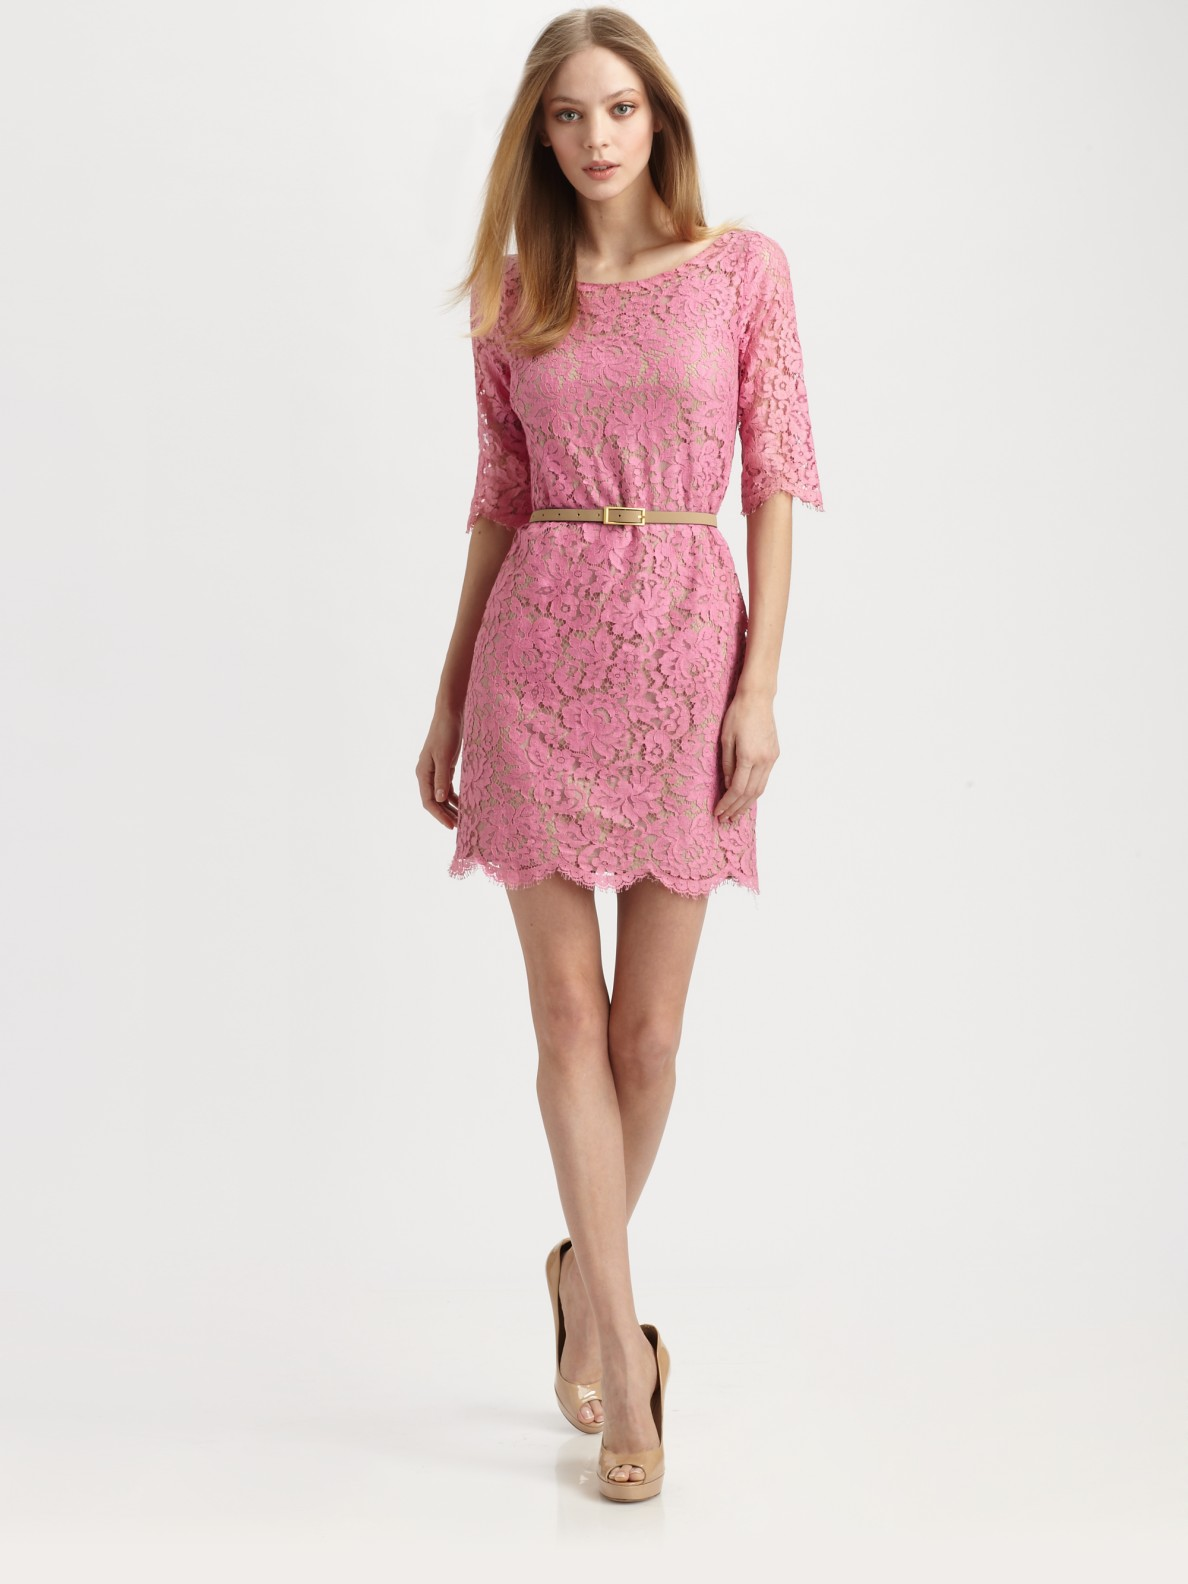 Lyst - Robert rodriguez Belted Lace Dress in Pink